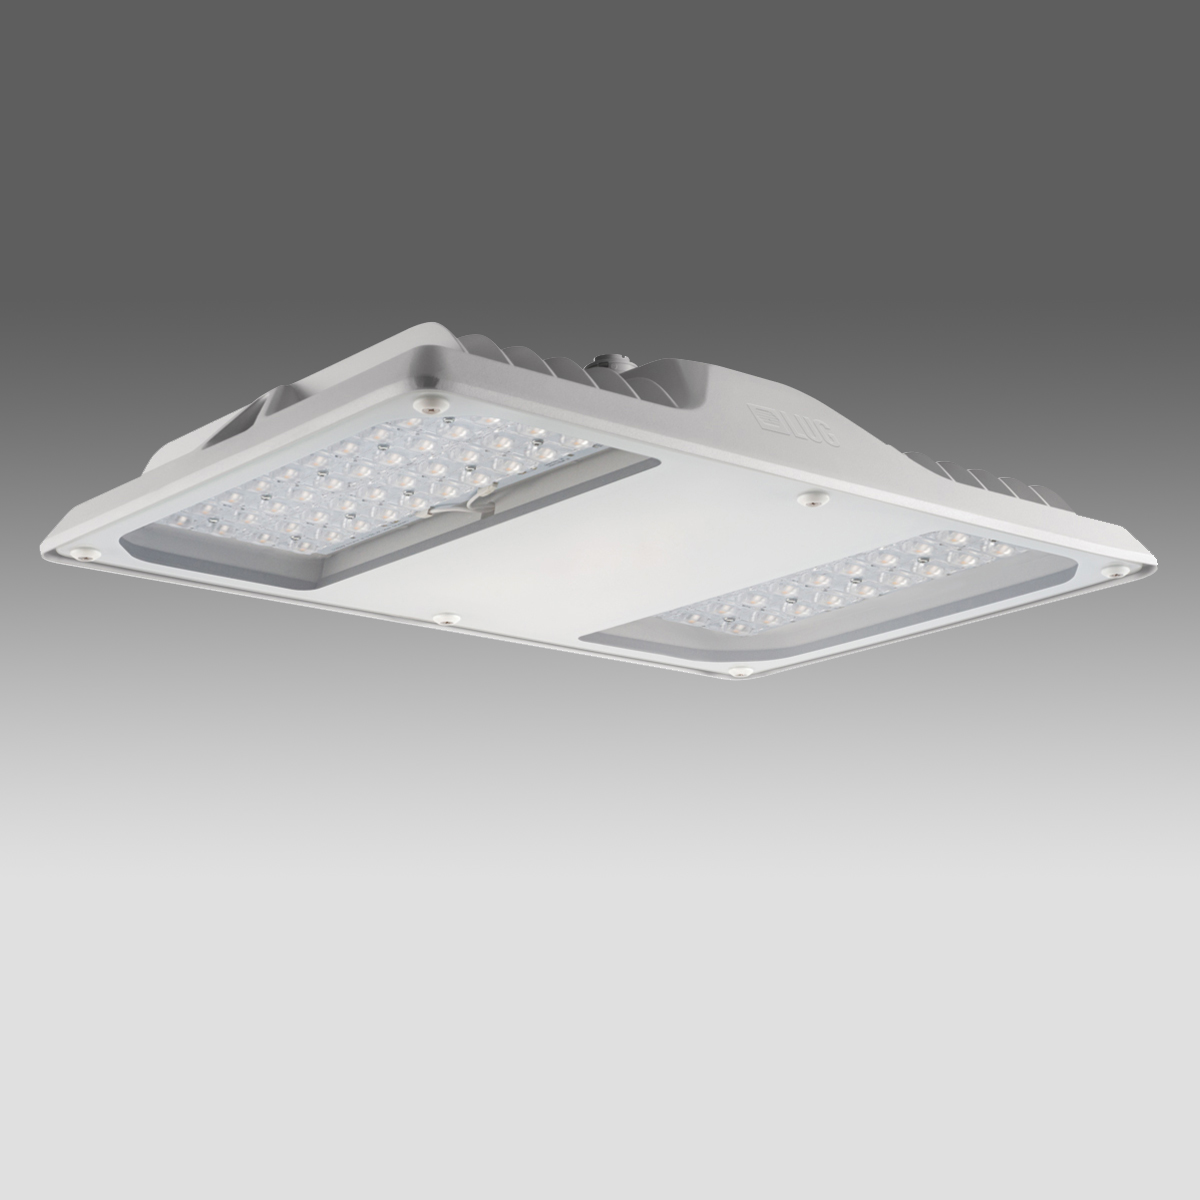 1 Stk Arktur Square PLUS LED 206W 24650lm/740 EVG IP65 120x40°grau LIG4251014